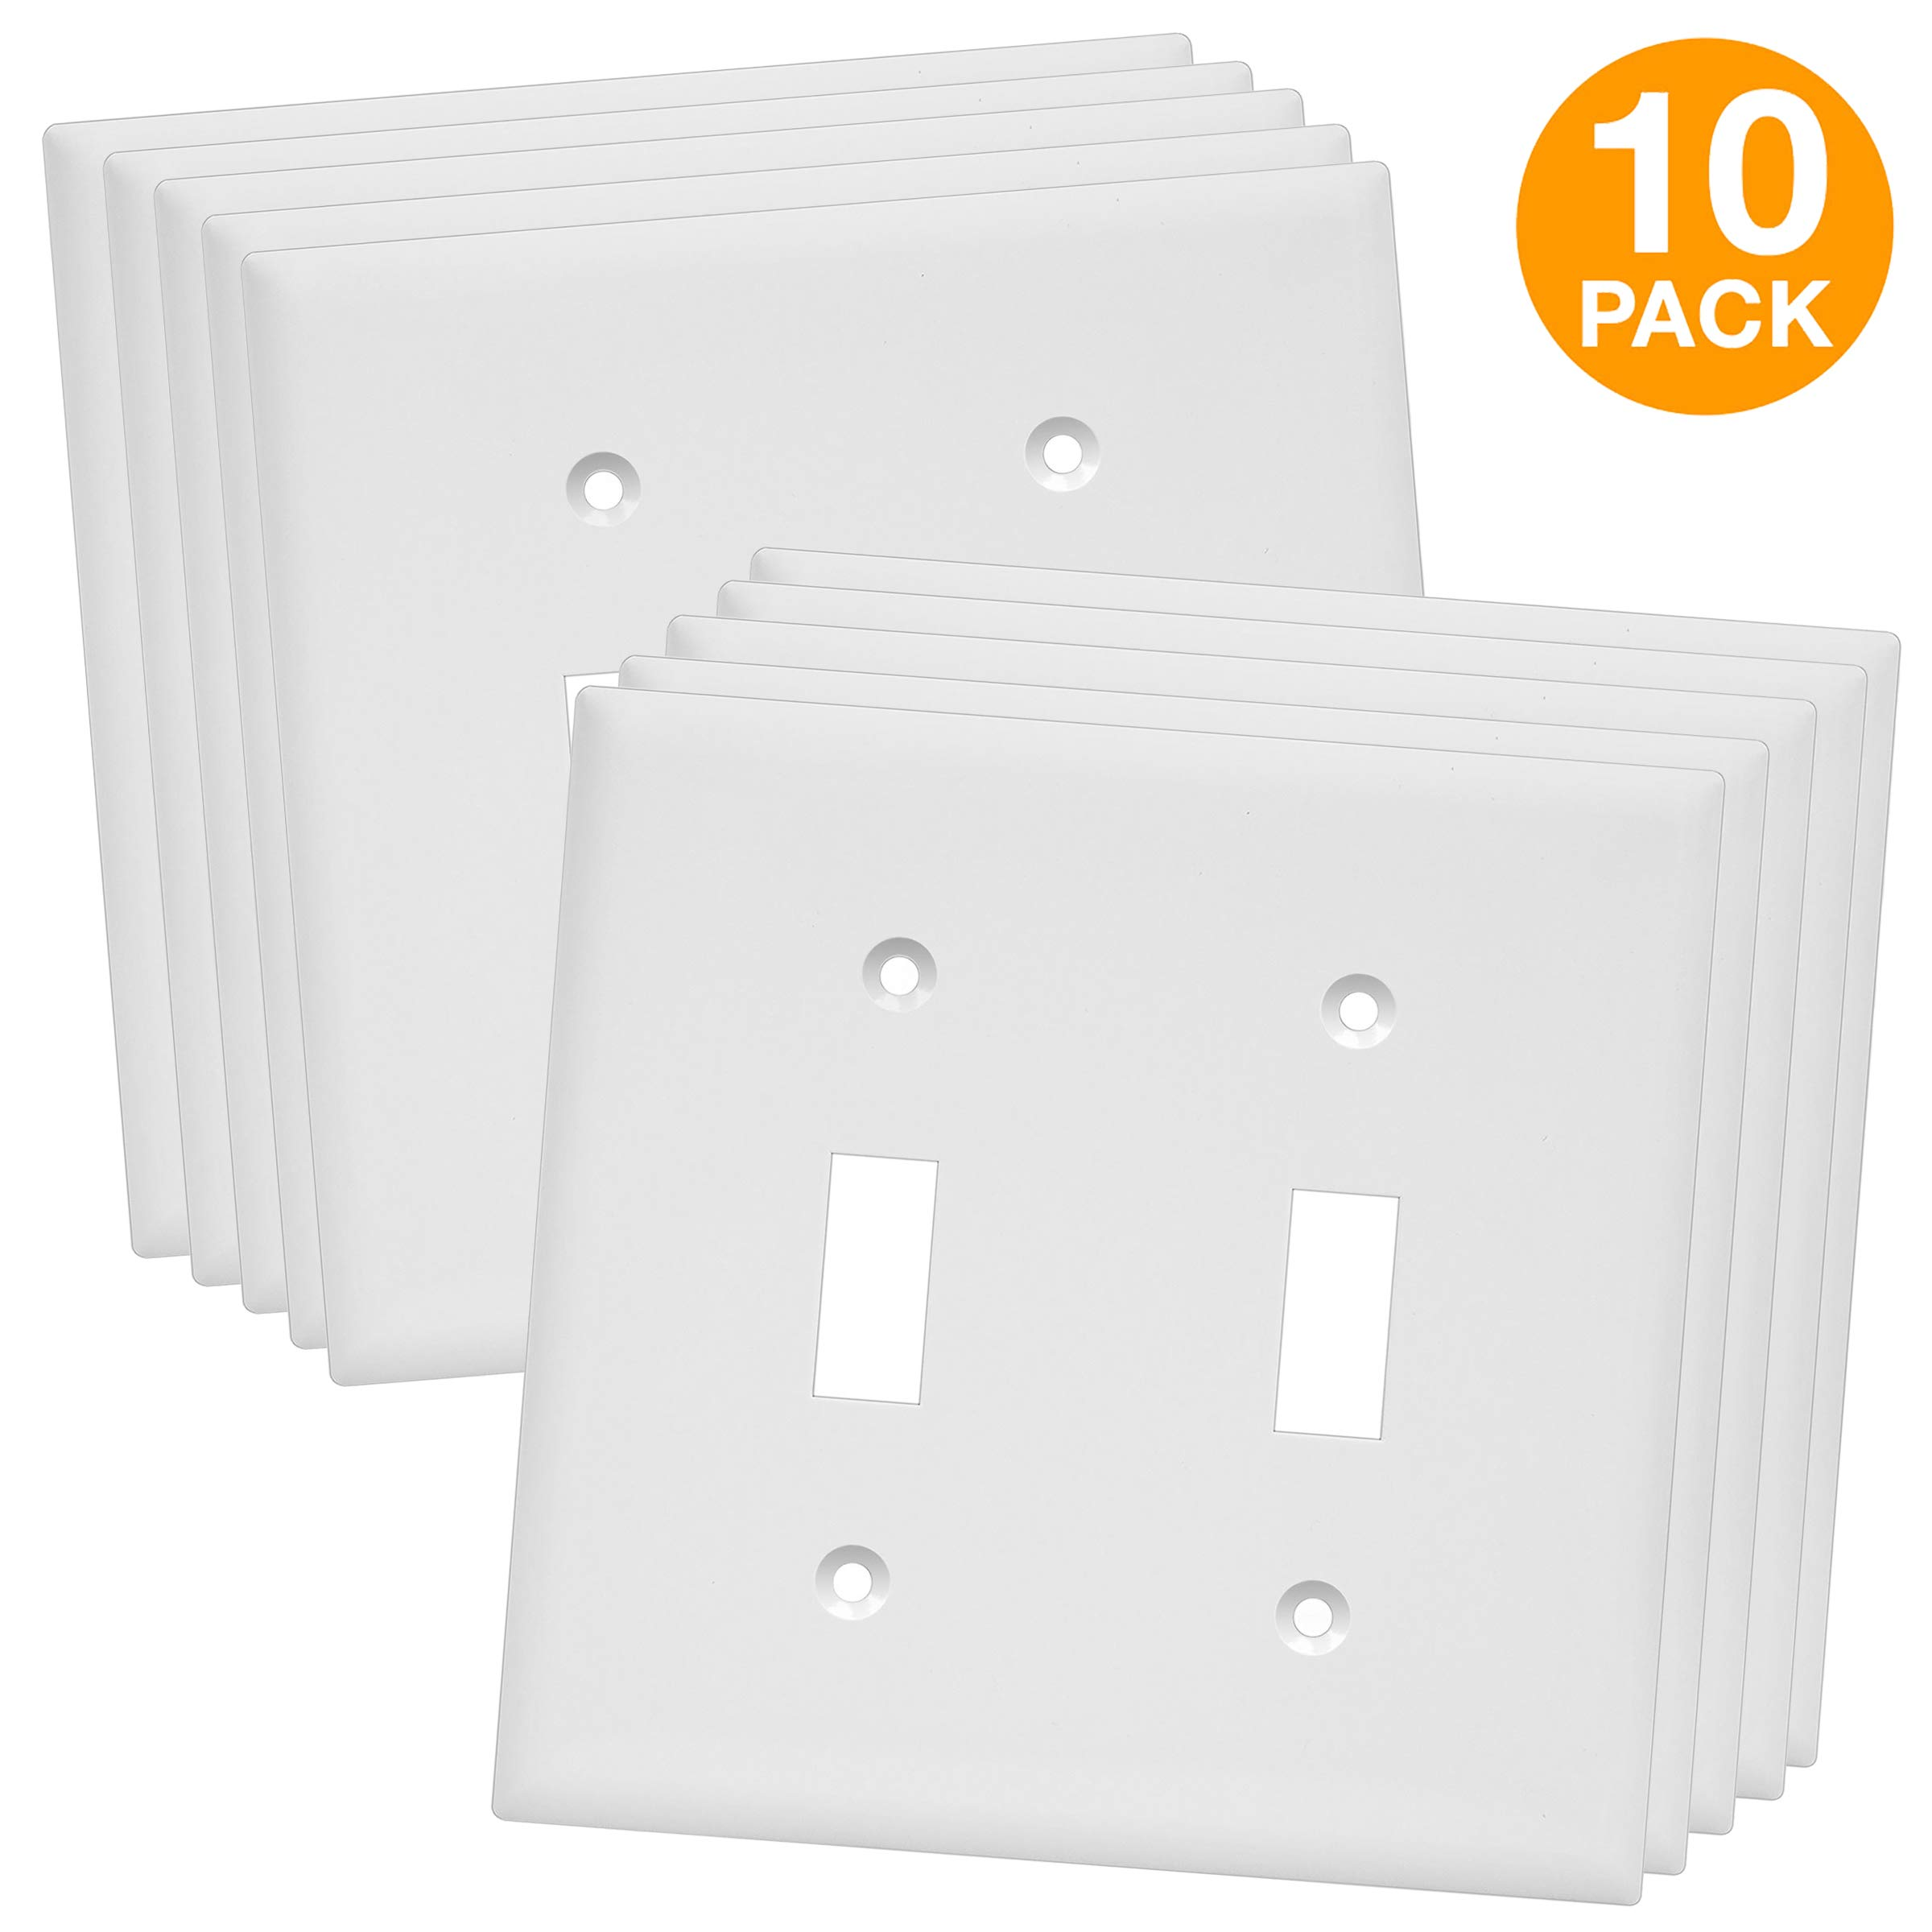 ENERLITES Toggle Light Switch Wall Plate, Size 2-Gang 4.50'' x 4.57'', Unbreakable Polycarbonate Thermoplastic, 8812-W-10PCS, White (10 Pack) by ENERLITES